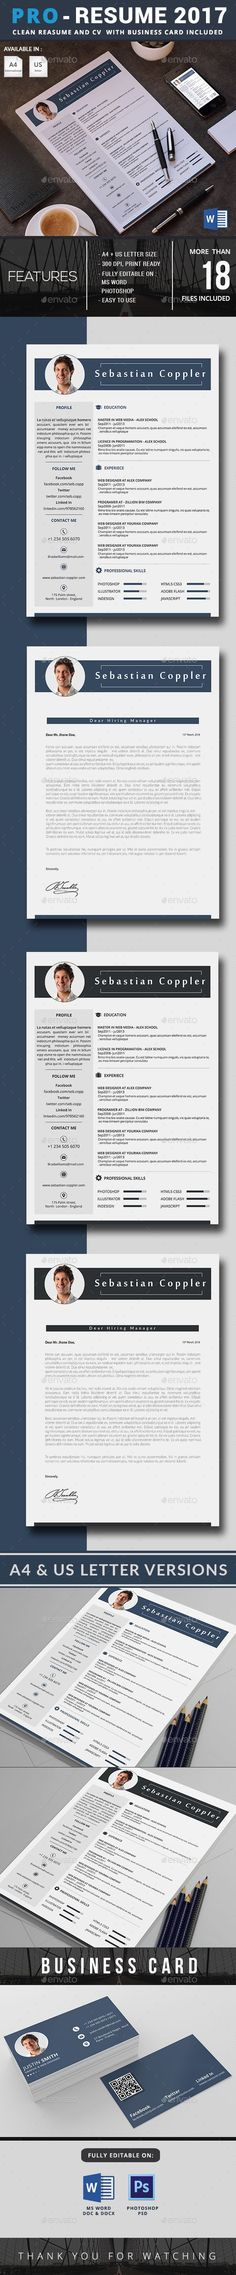 medical billing resumes%0A CV   Resumes Stationery Download here  https   graphicriver net